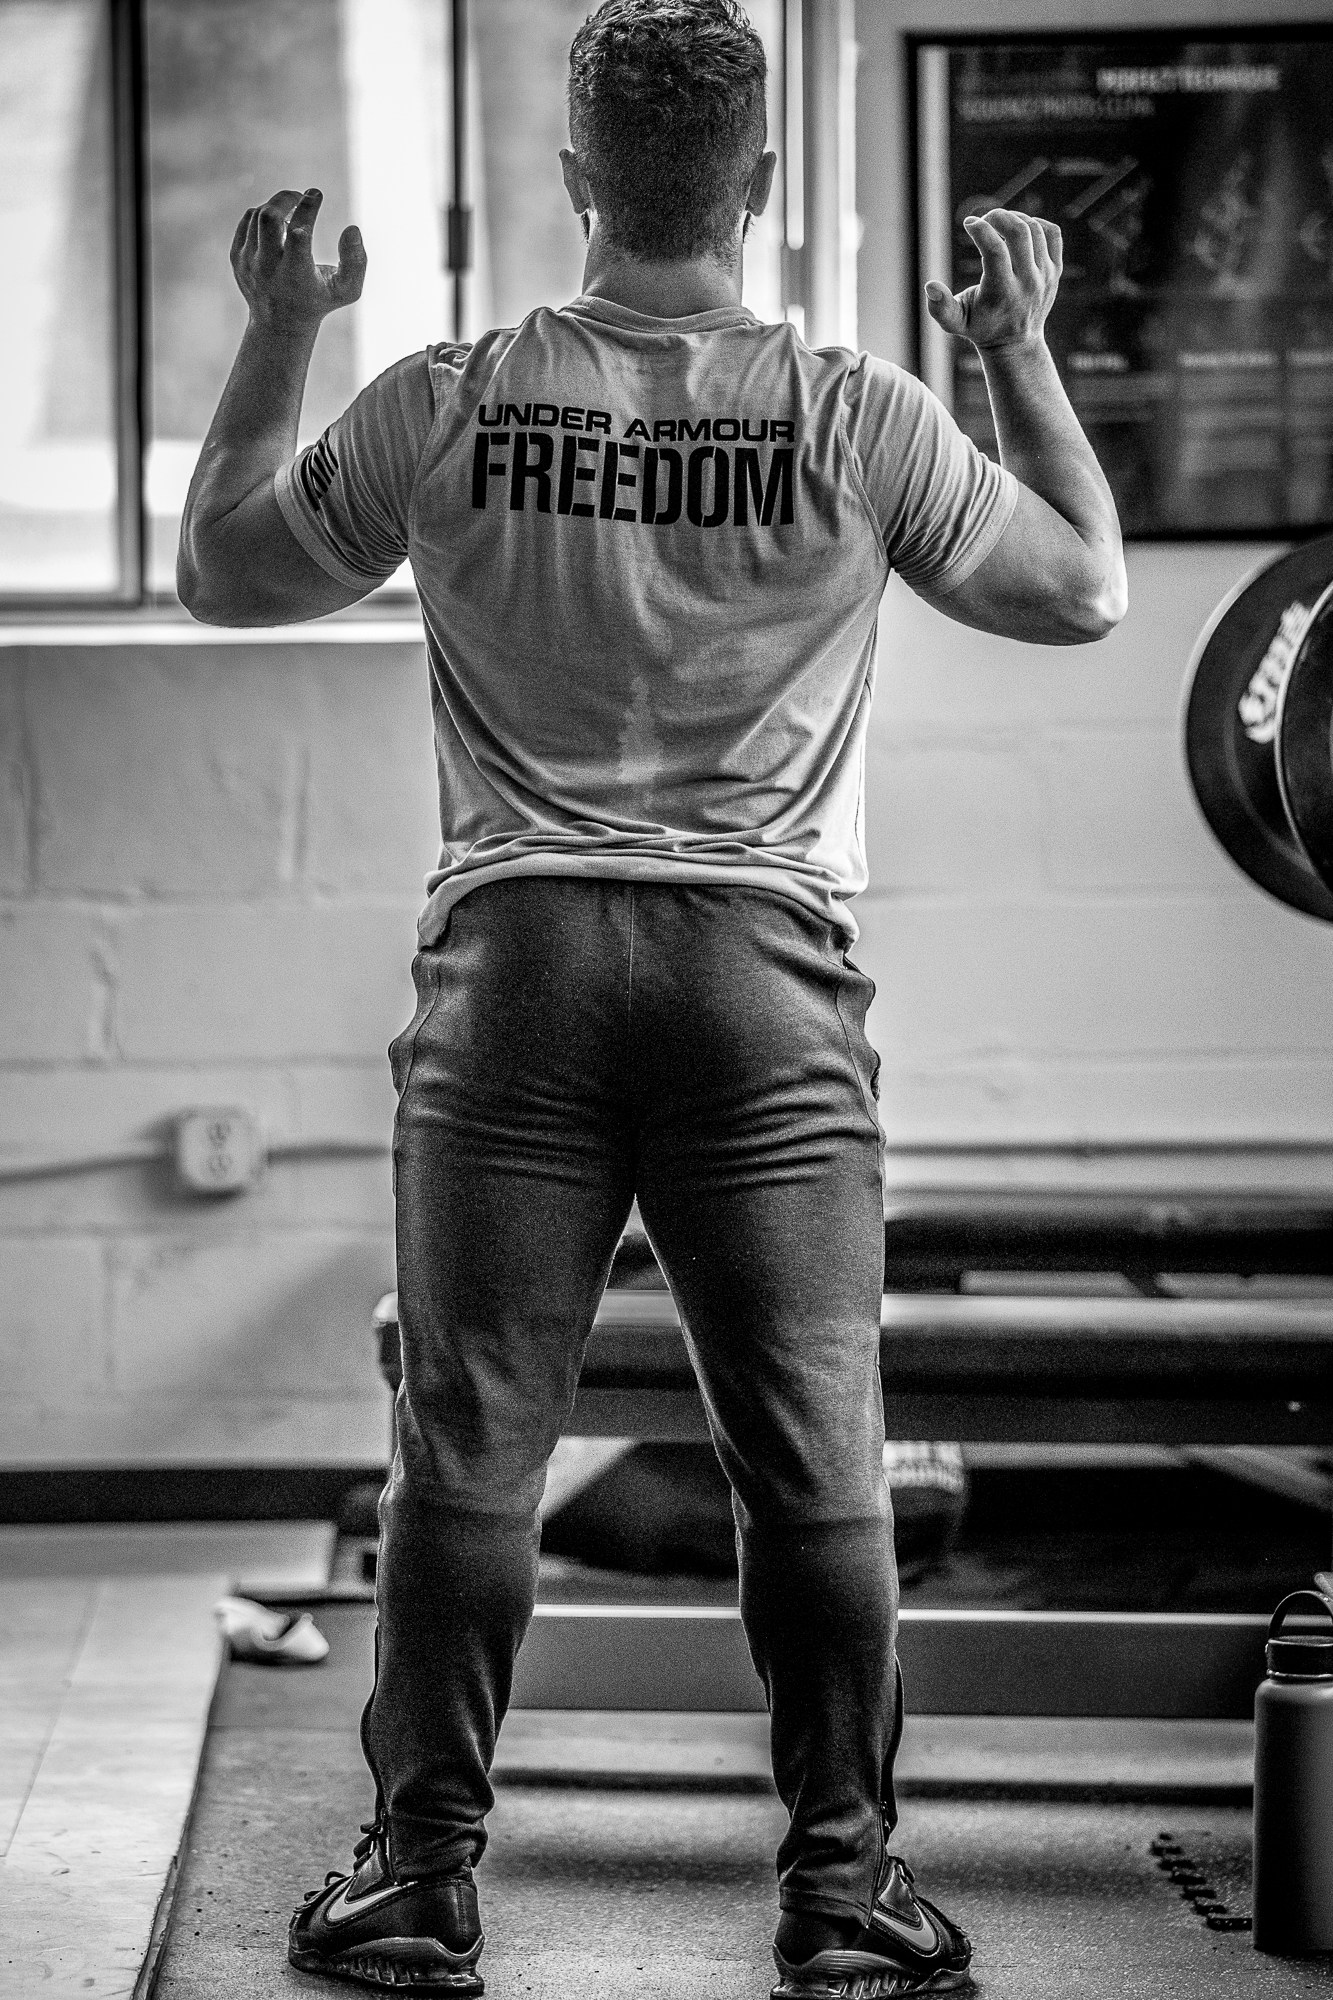 Why do you squat? Looking to get strong? For Booty gainz?